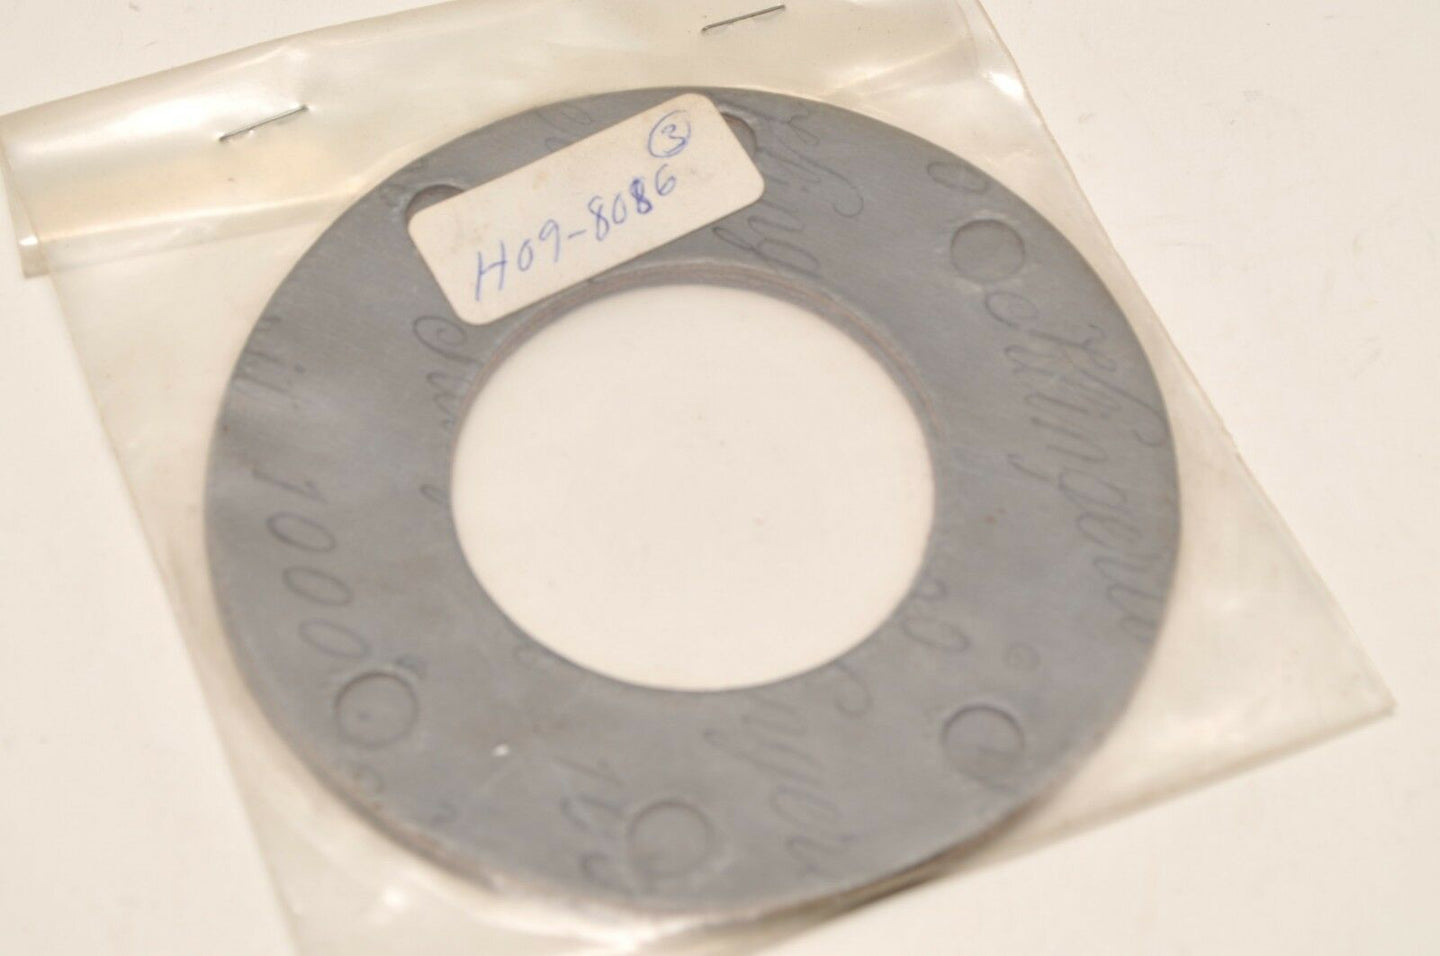 NOS Kimpex Head Gasket H09-8086 Qty:3 713086 Skidoo Bombardier Rotax 340 TNT FA